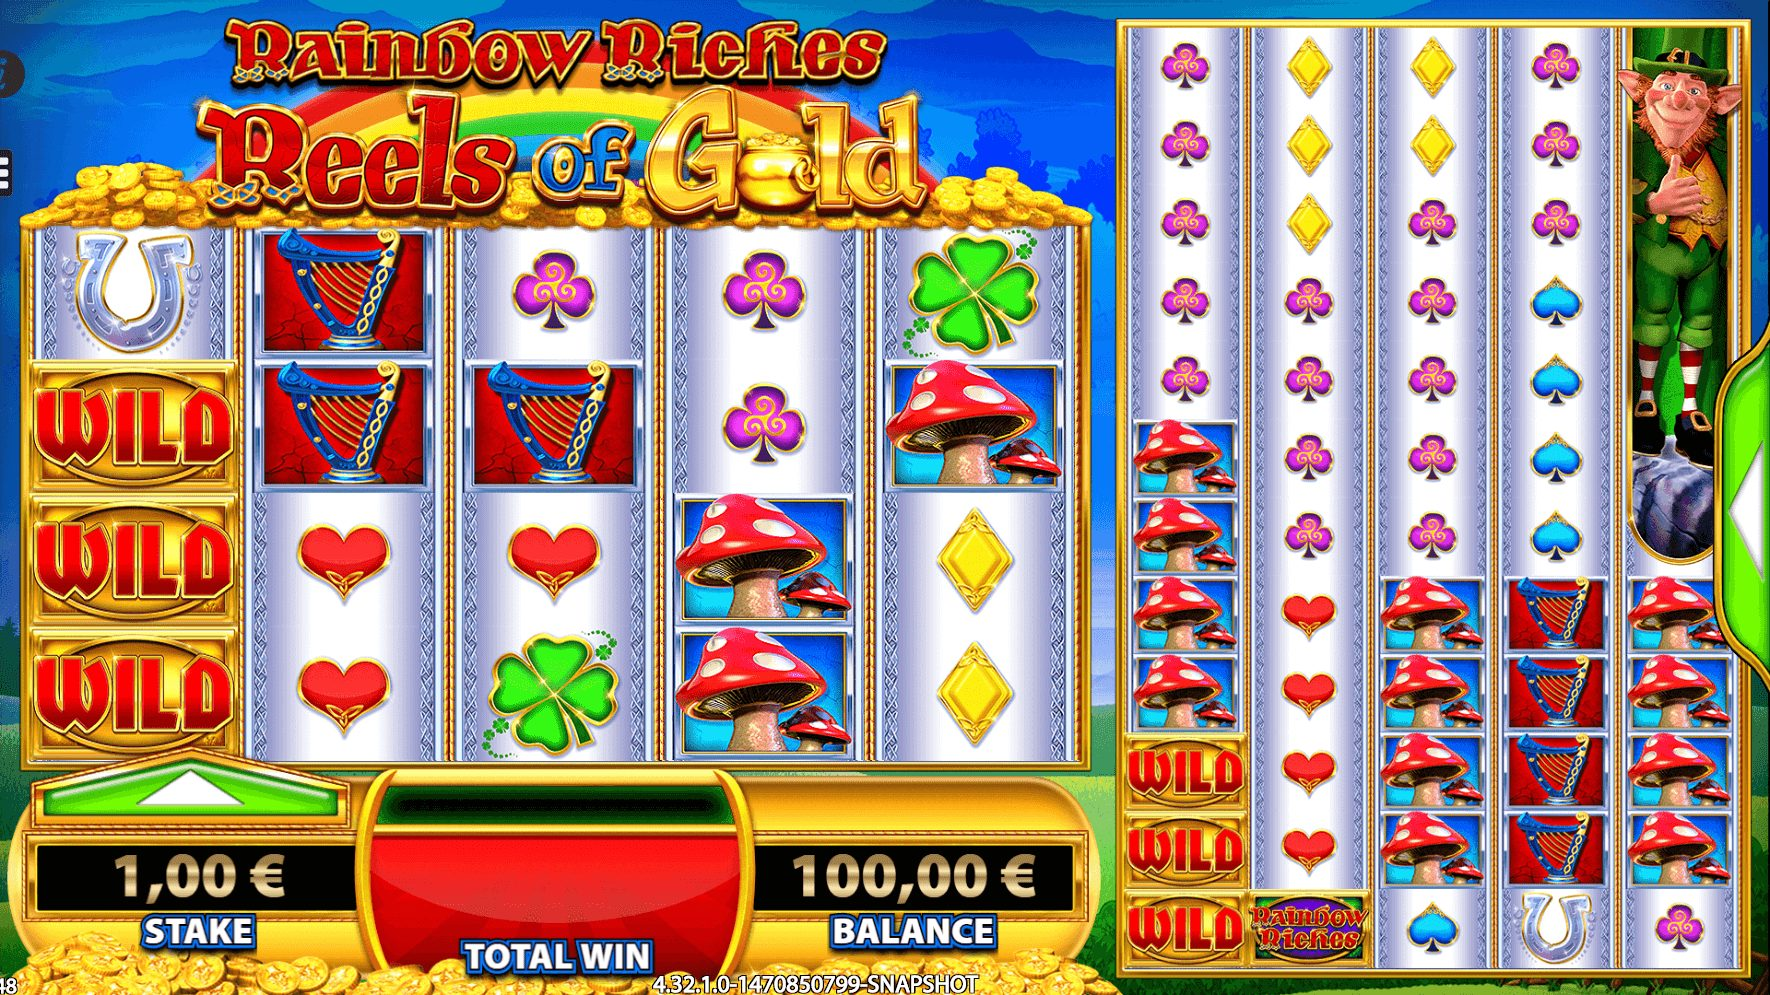 Rainbow Riches Reels of Gold at kerching casino